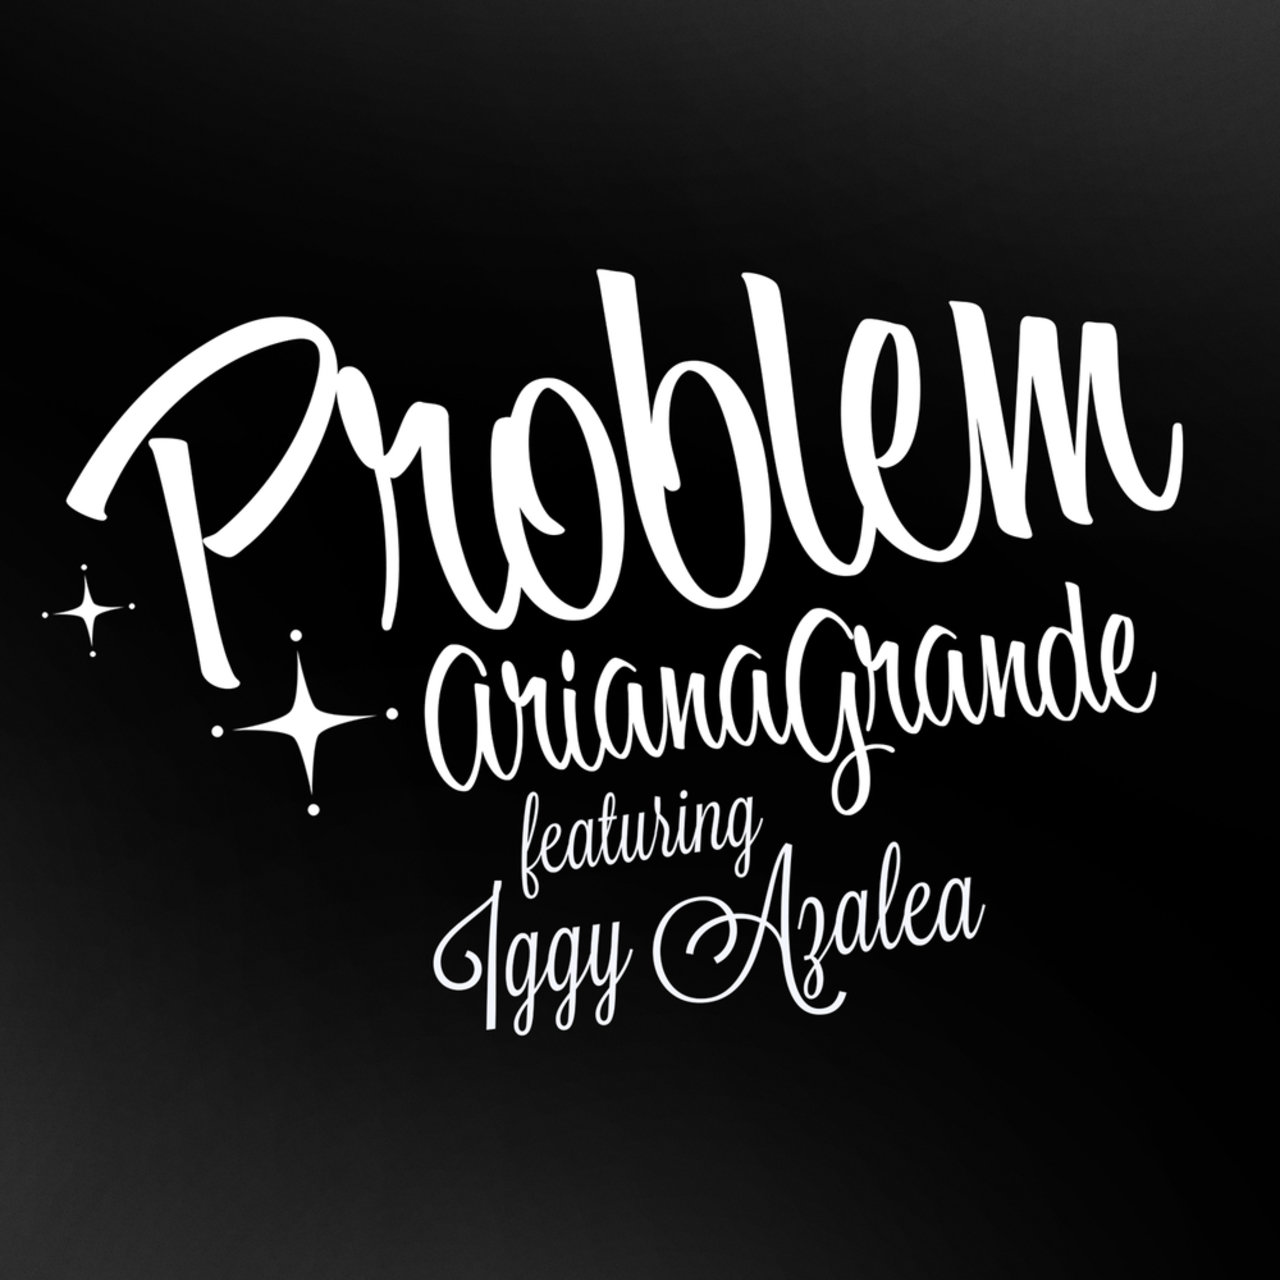 Buy Grande ariana problem cover art picture trends